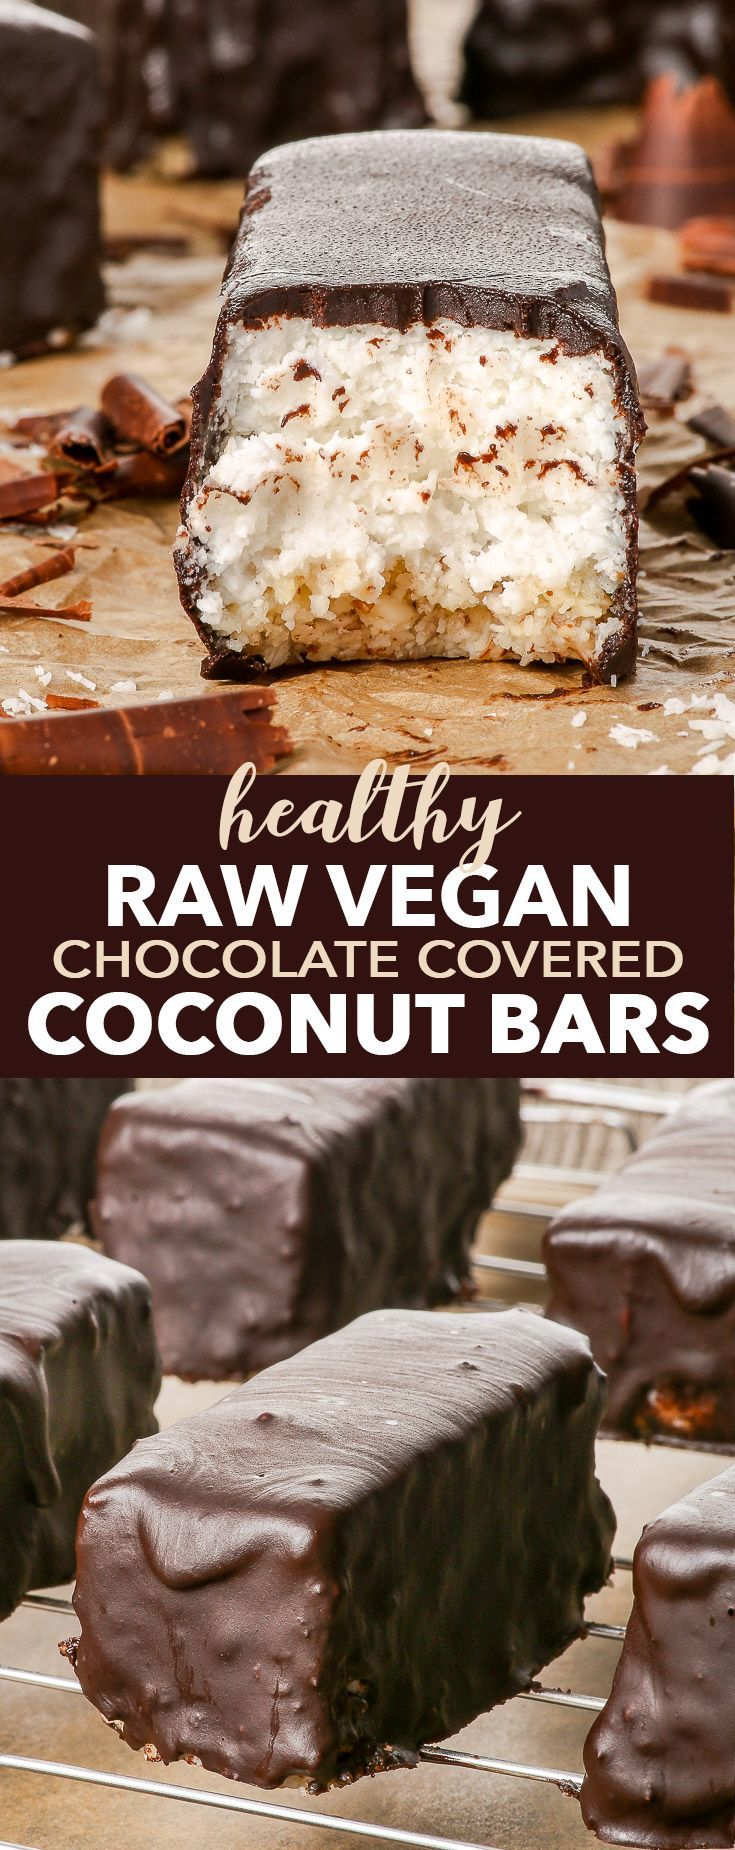 Raw Vegan Chocolate Covered Coconut Bars {gluten, dairy, egg, peanut, soy & ref. sugar free, vegan, paleo}  ☽☯☾magickbohemian